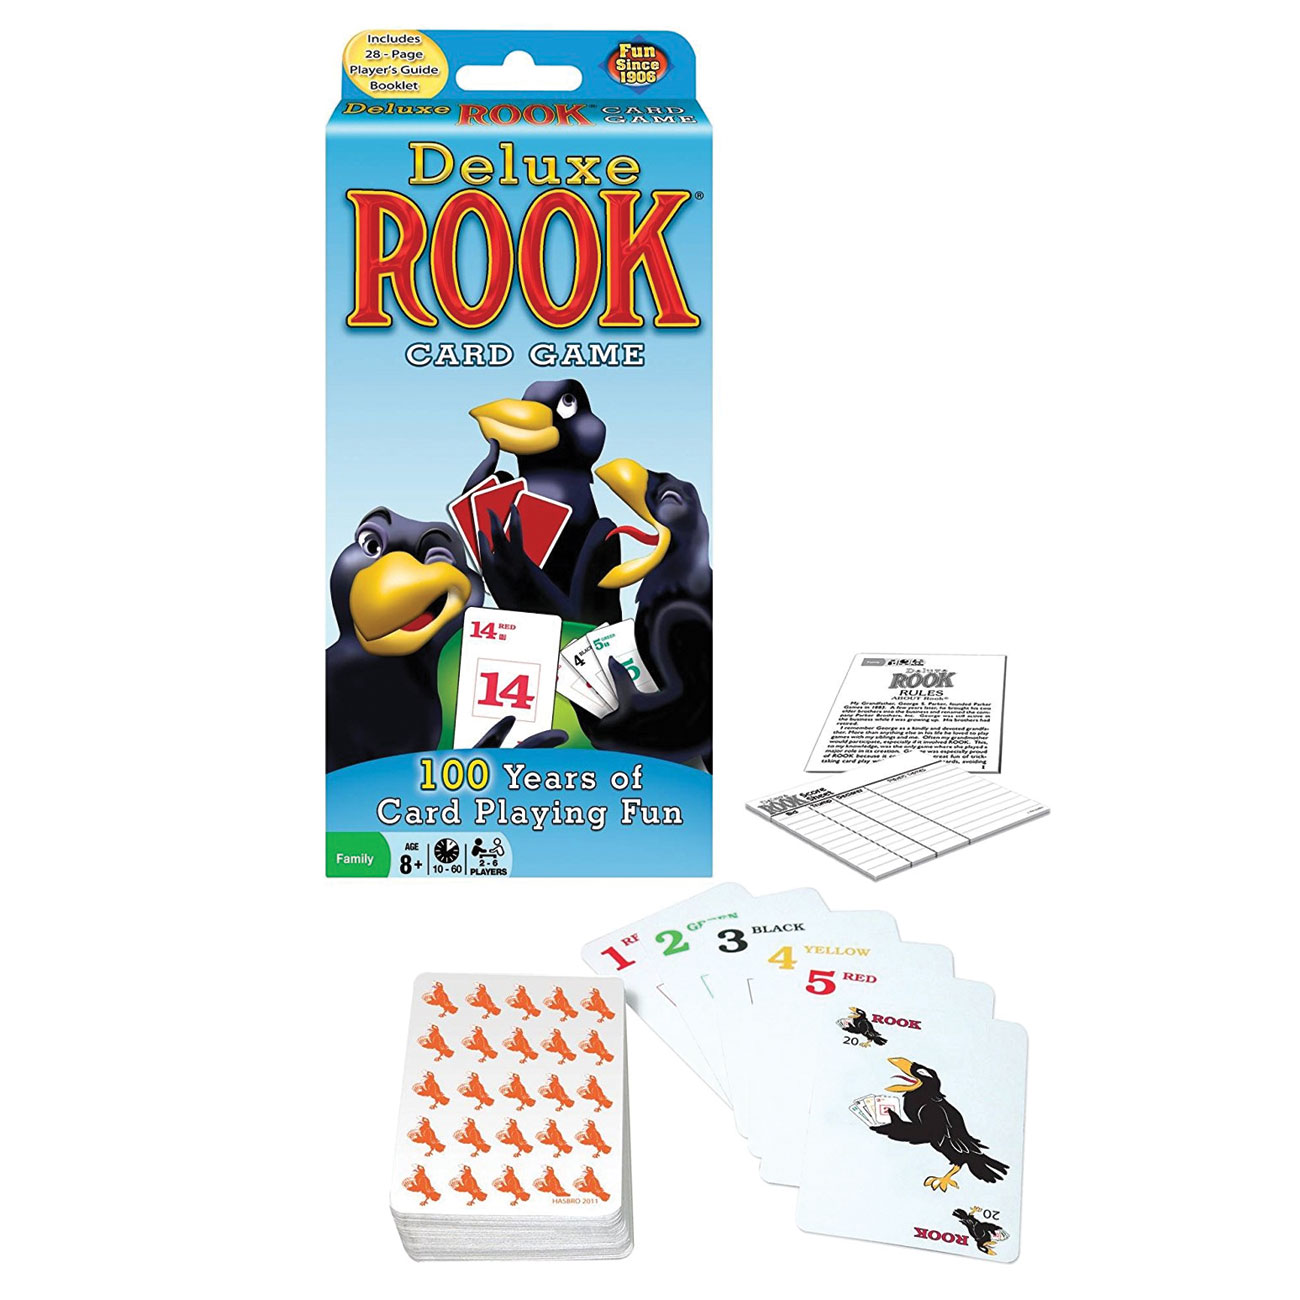 Braille - Rook Cards Price: $15.95